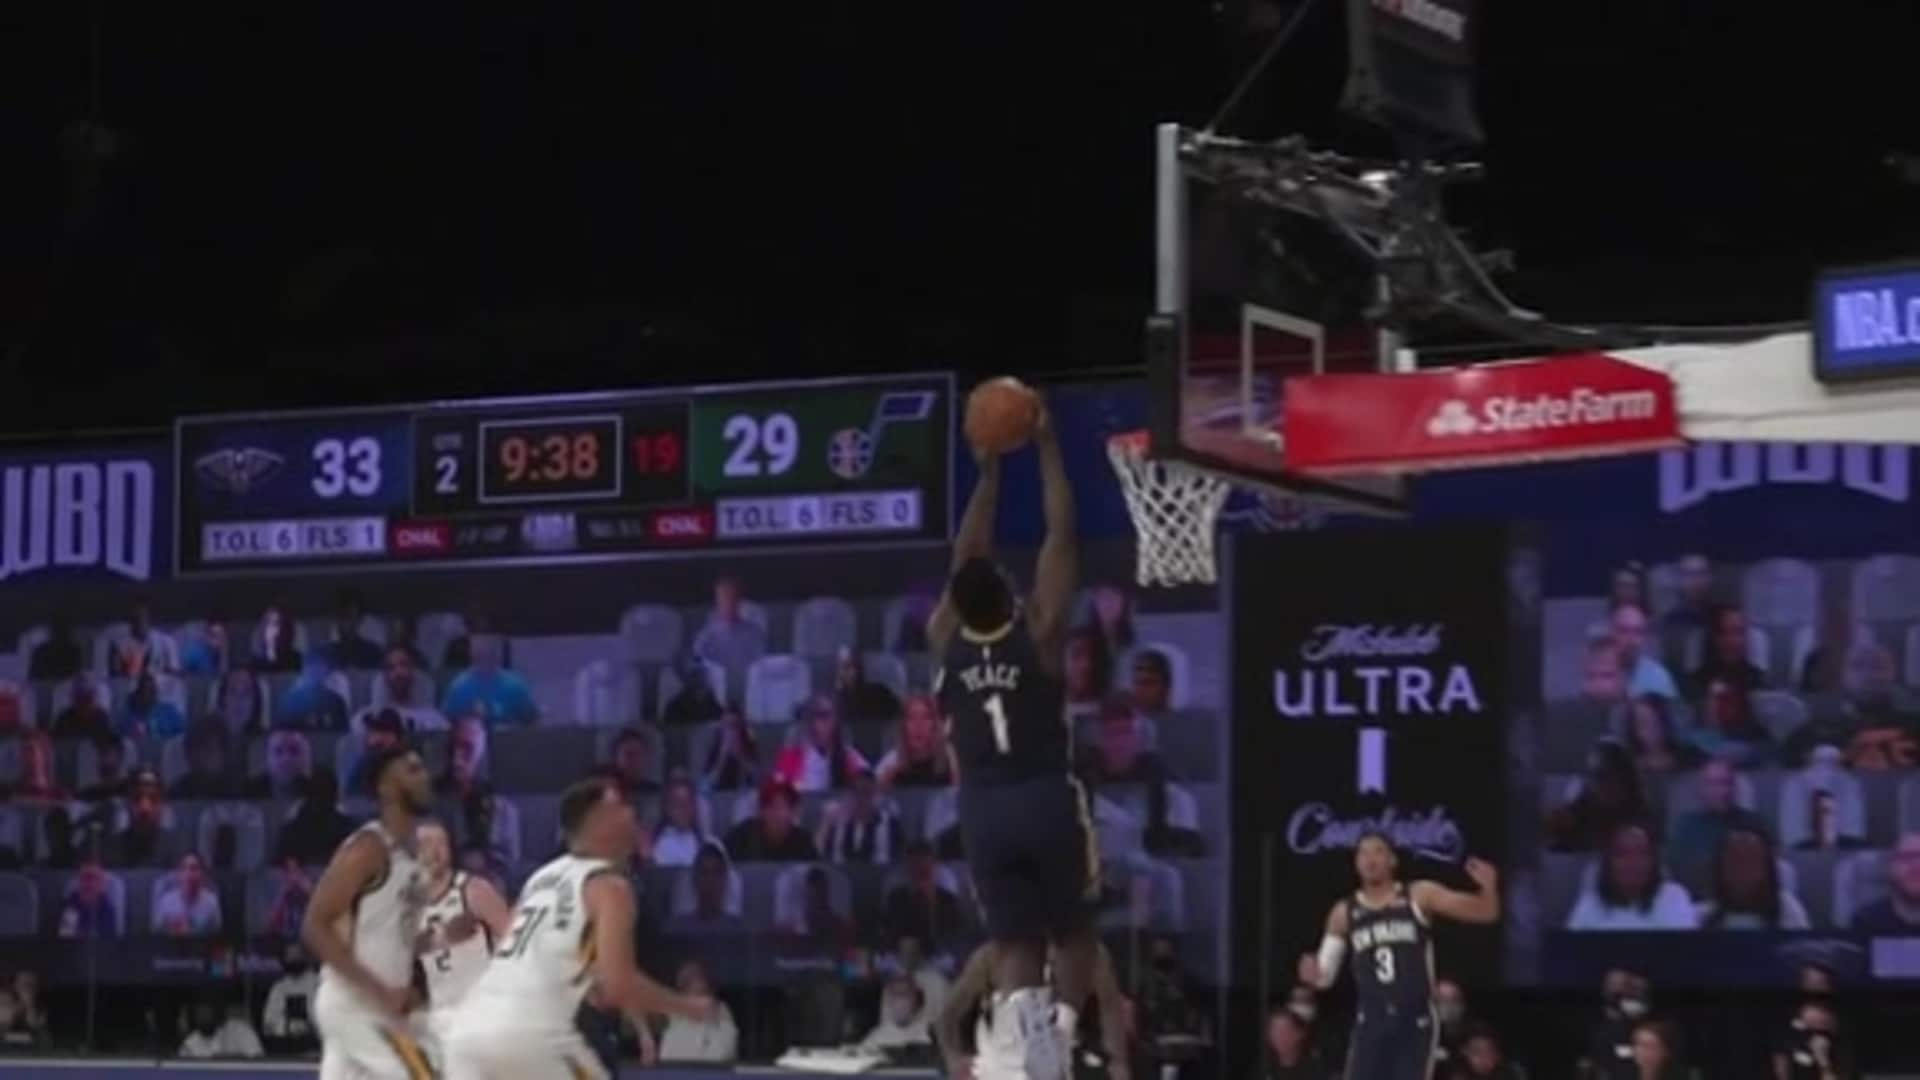 Pelicans vs. Jazz Slo-Mo Highlights: Lonzo Ball alley-oop lob to Zion Williamson